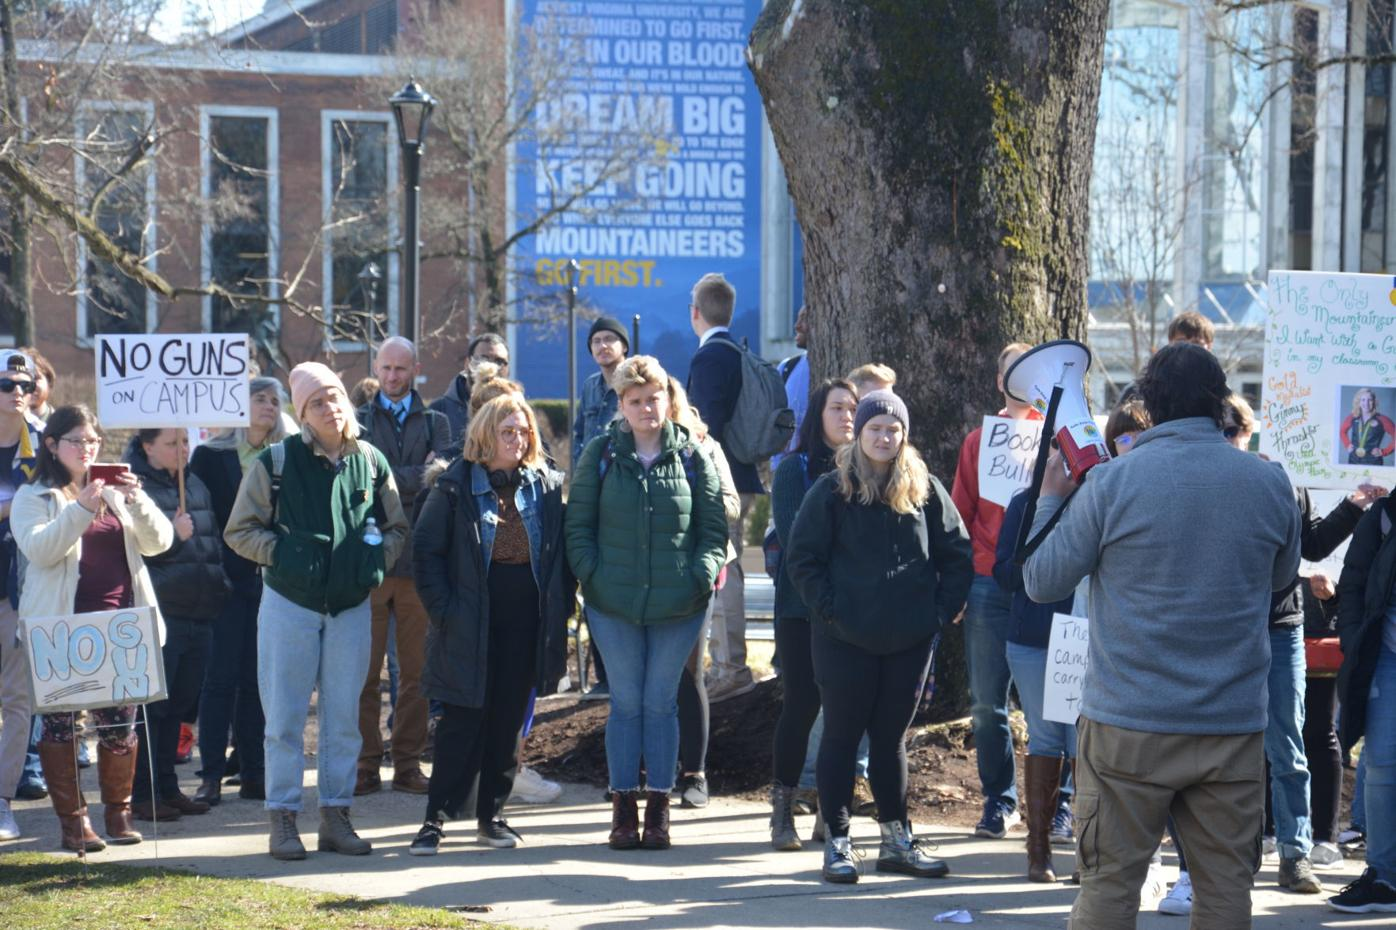 WVU Campus Carry protest